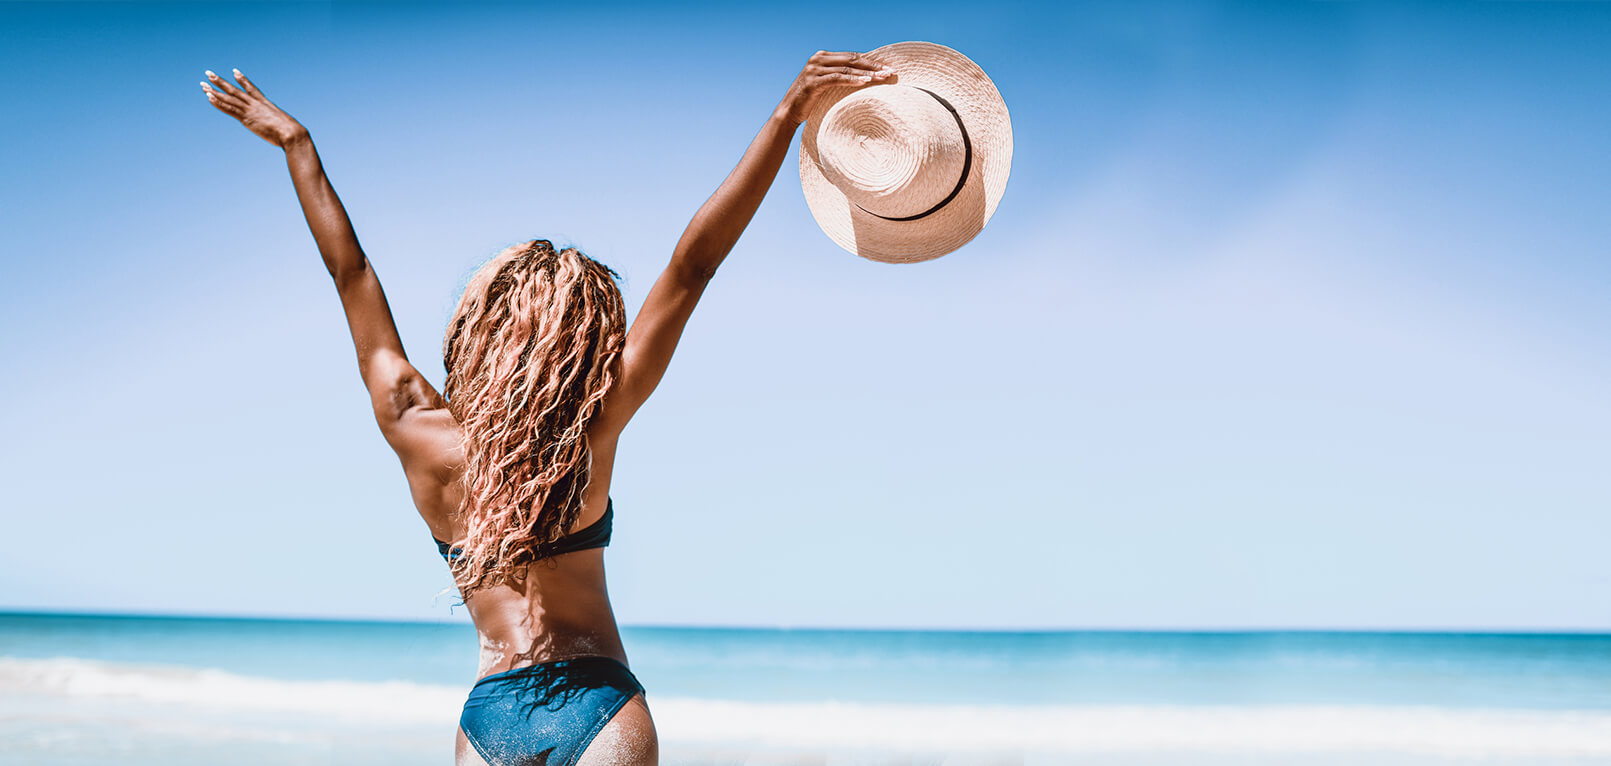 Woman at beach with her arms in the air